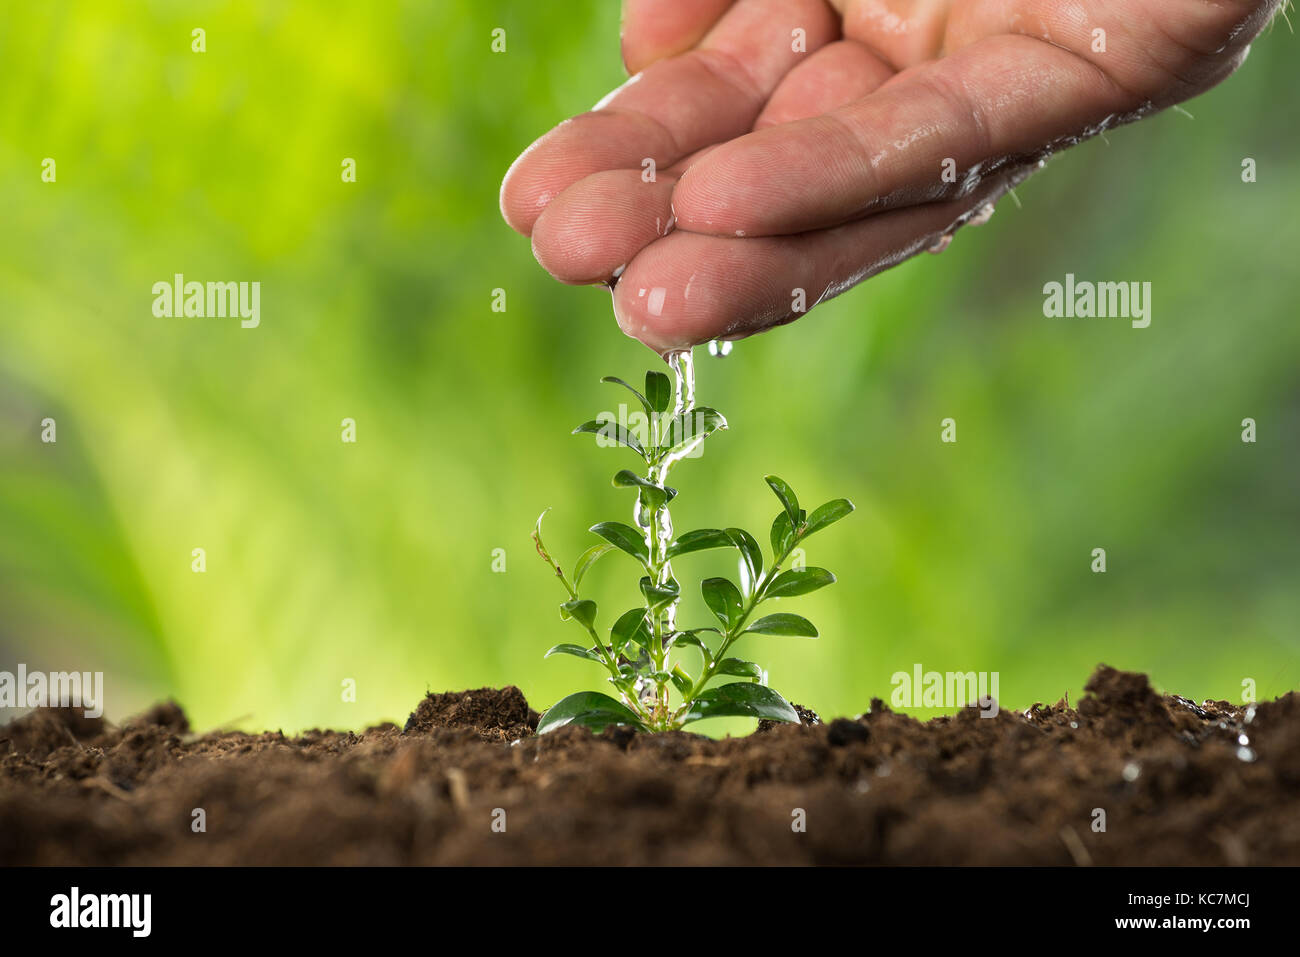 Close-up Of A Person Hand Watering To Small Plant - Stock Image